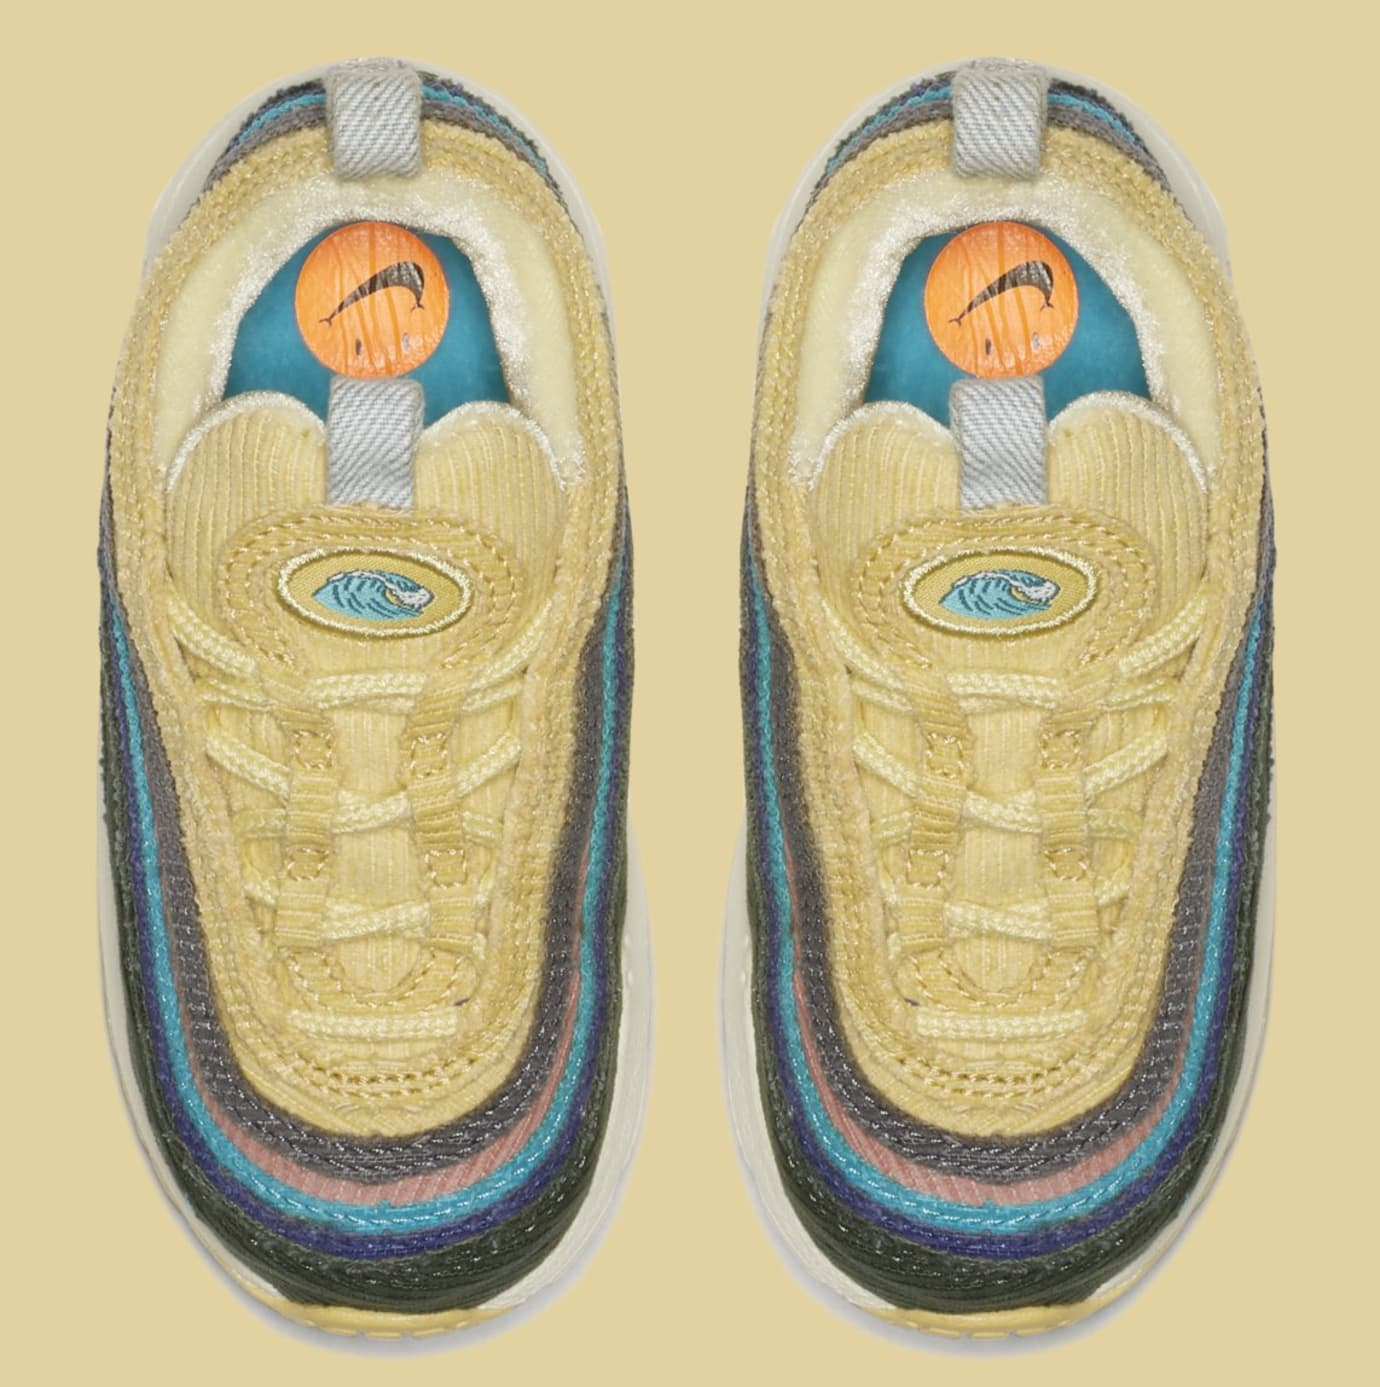 Sean Wotherspoon x Nike Air Max 1/97 Toddler BQ1670-400 (Top)